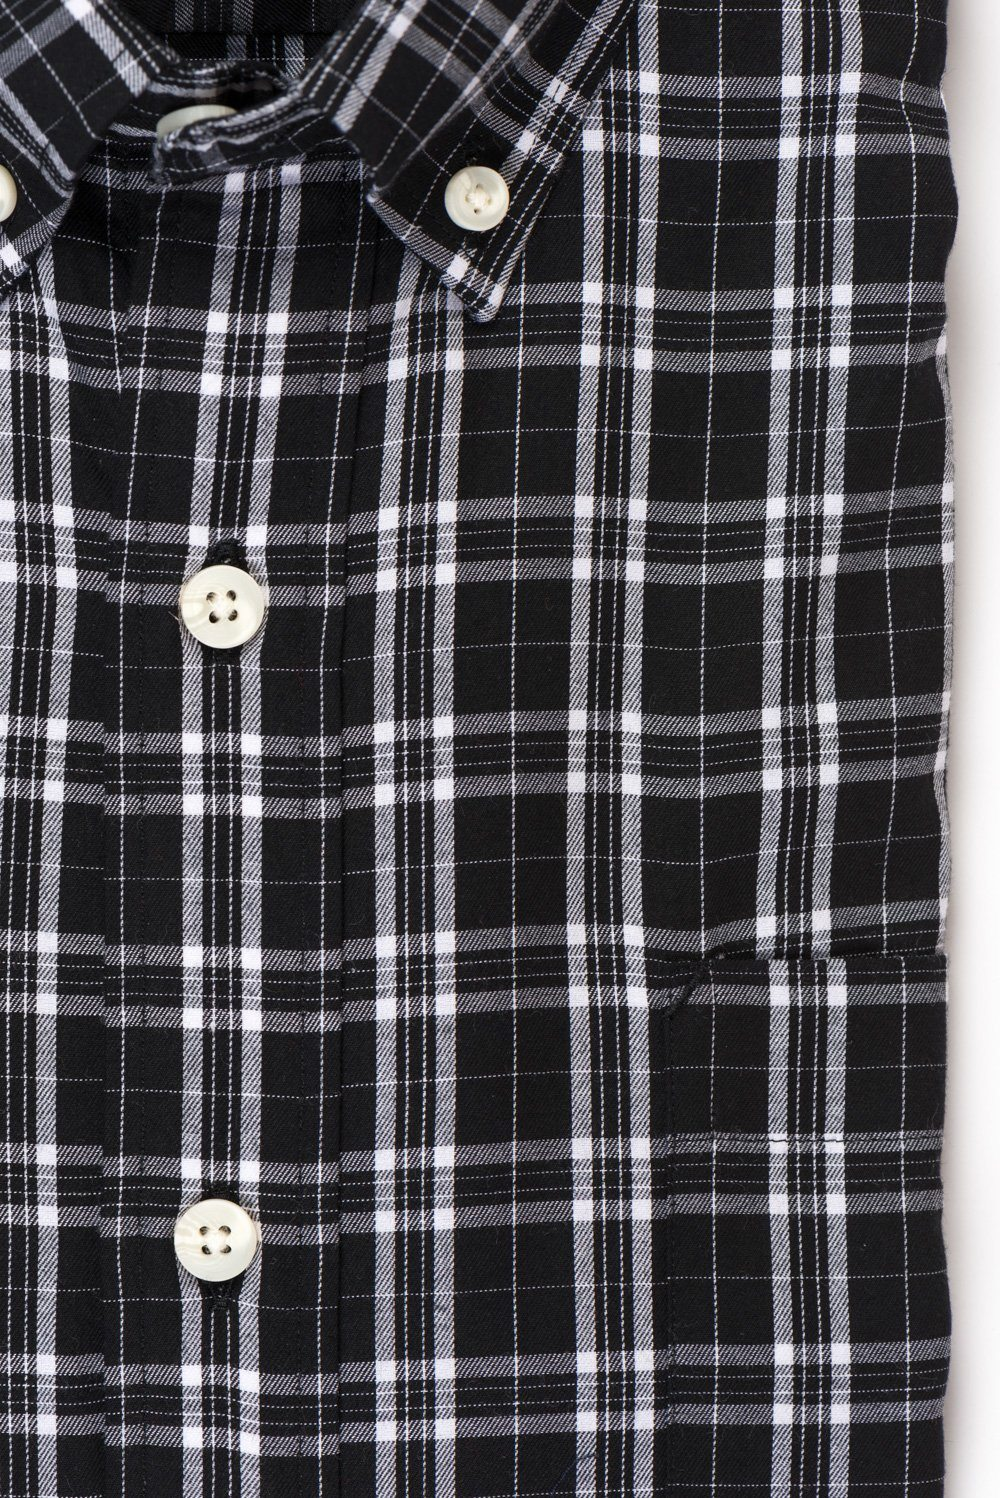 Black white check brushed twill shirt fabric